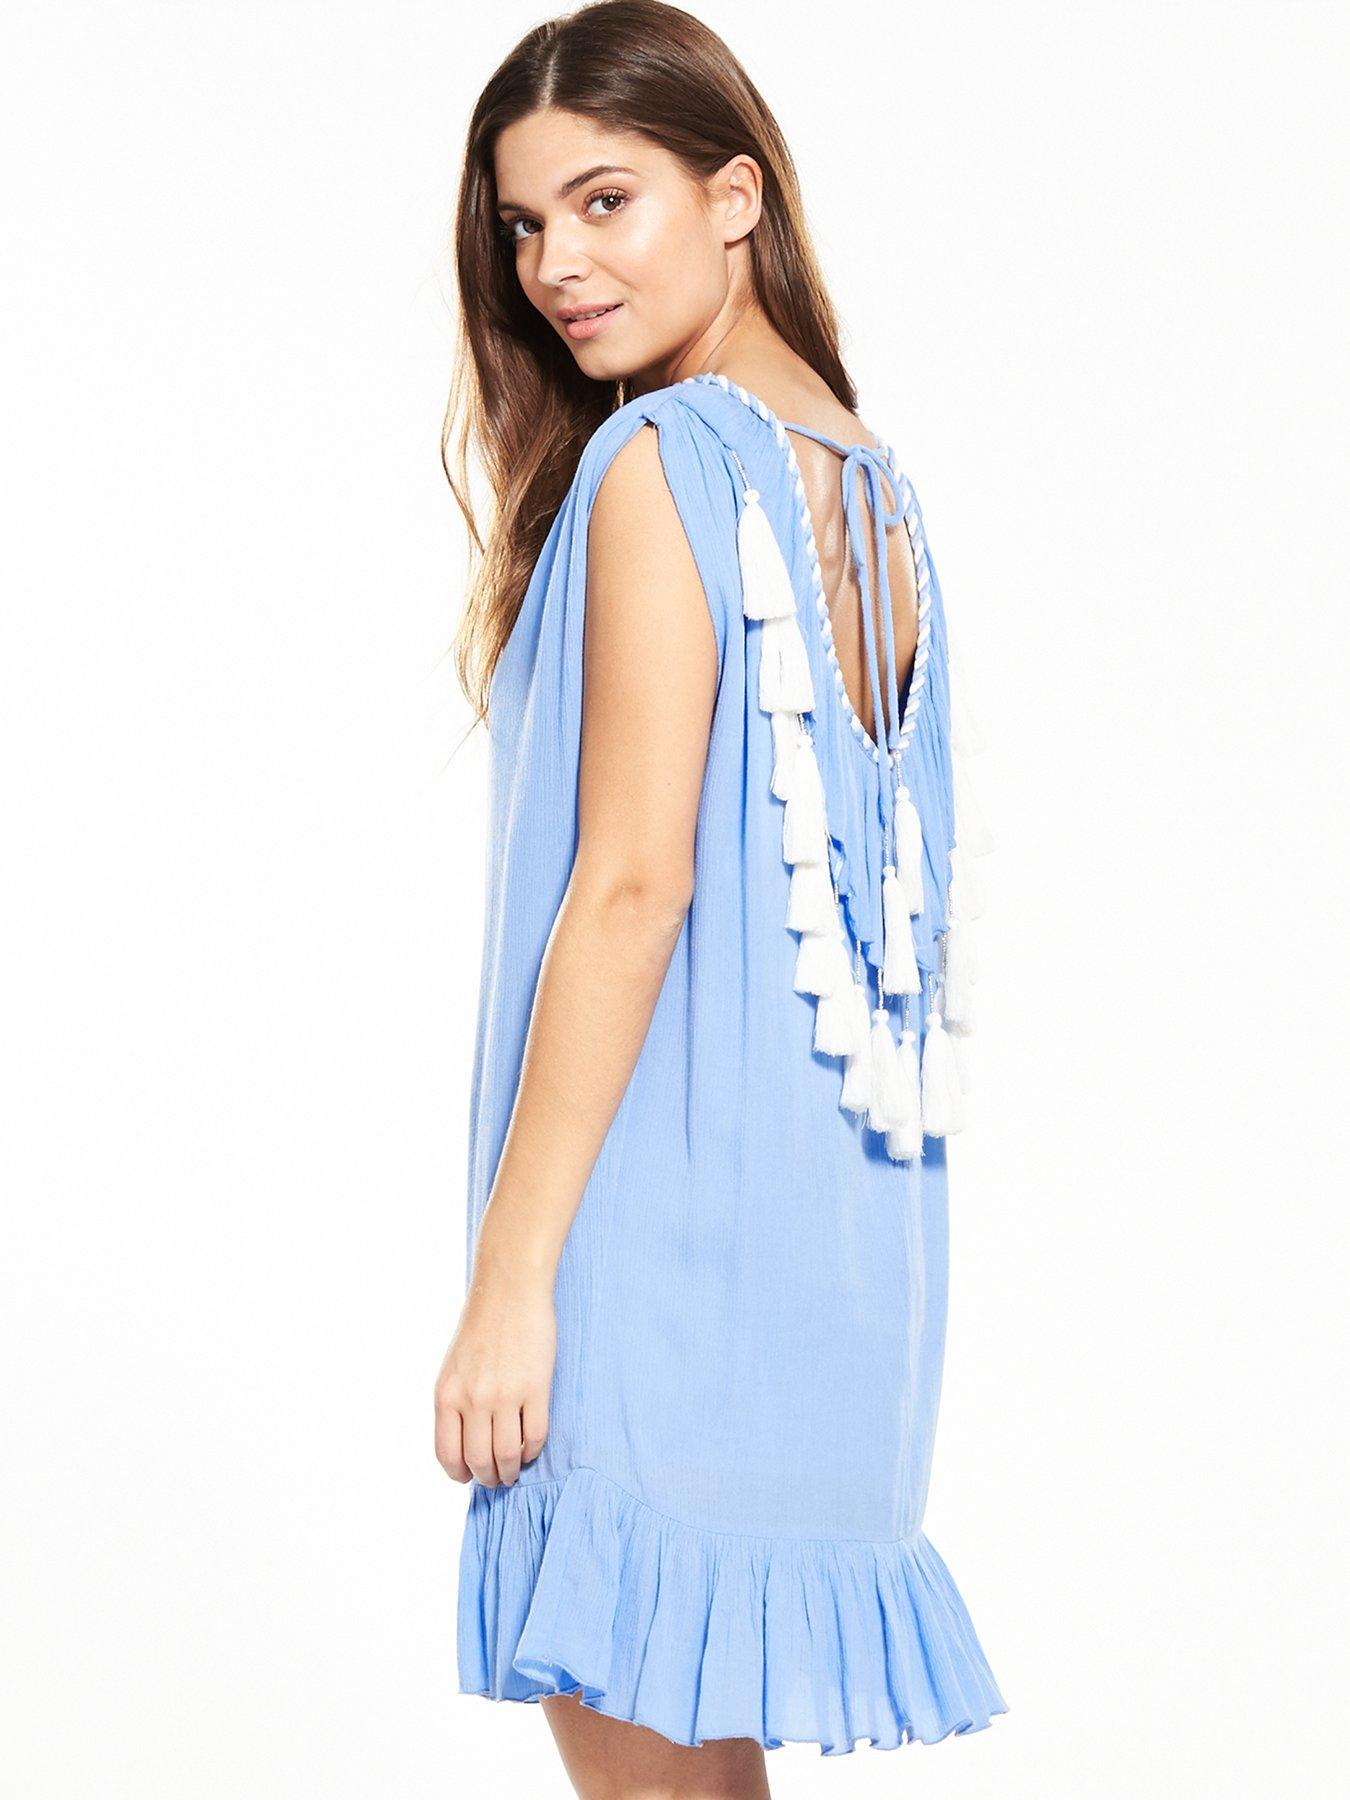 Tassel Beach Dress, €48 Shop here